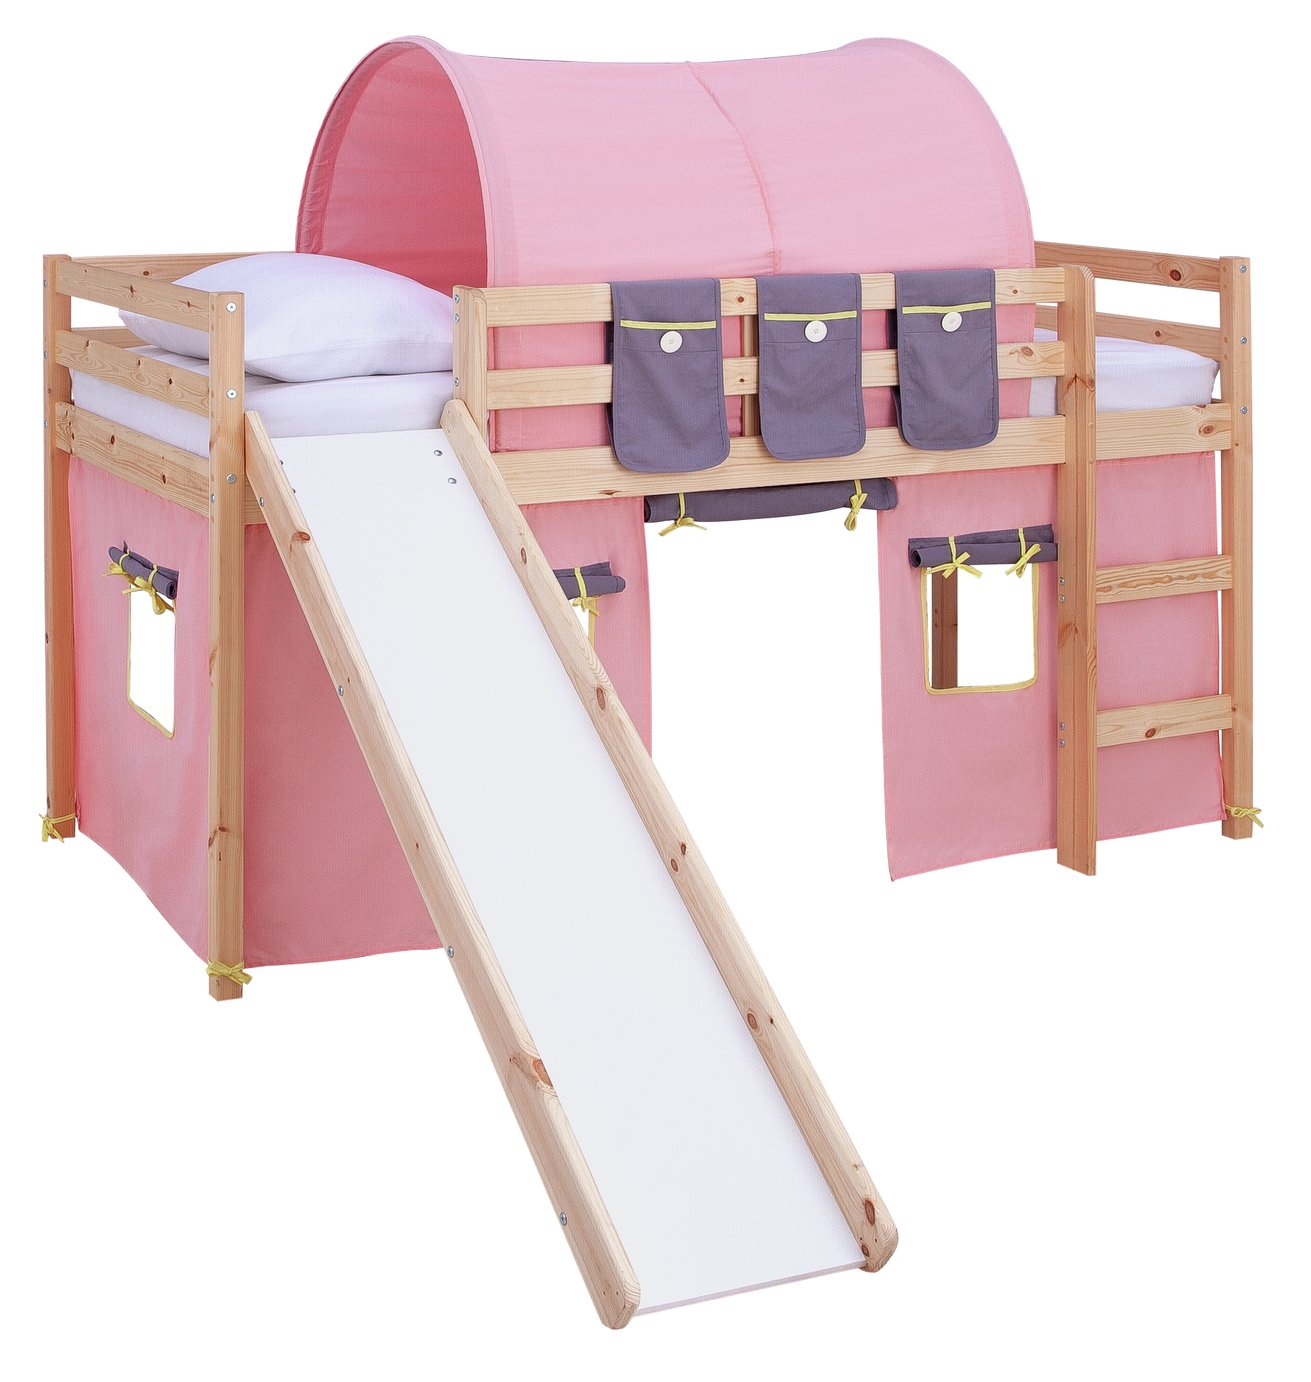 Argos Home Kaycie Pine Mid Sleeper with Slide & Rose Tent